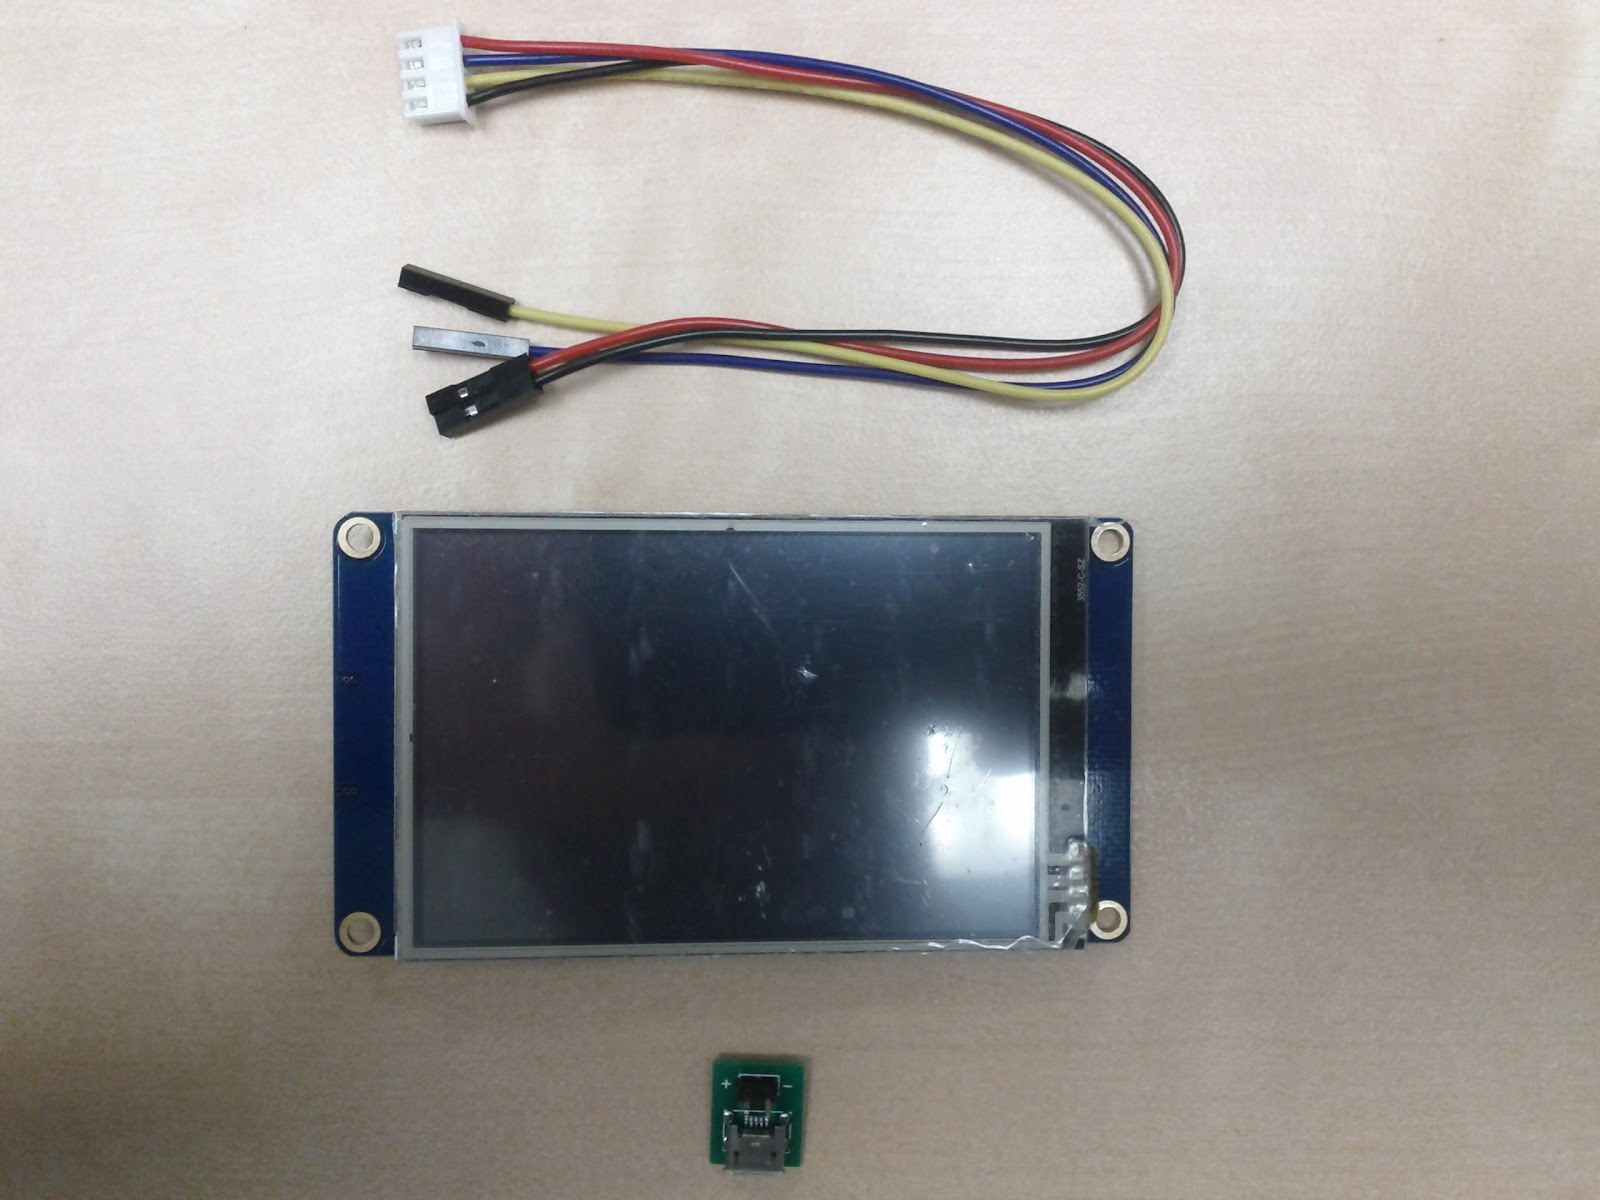 Nextion Hmi Display A User Interface That Is Simple And Easy To Wire Harness Package The Contents Screen Usb Power Connecor